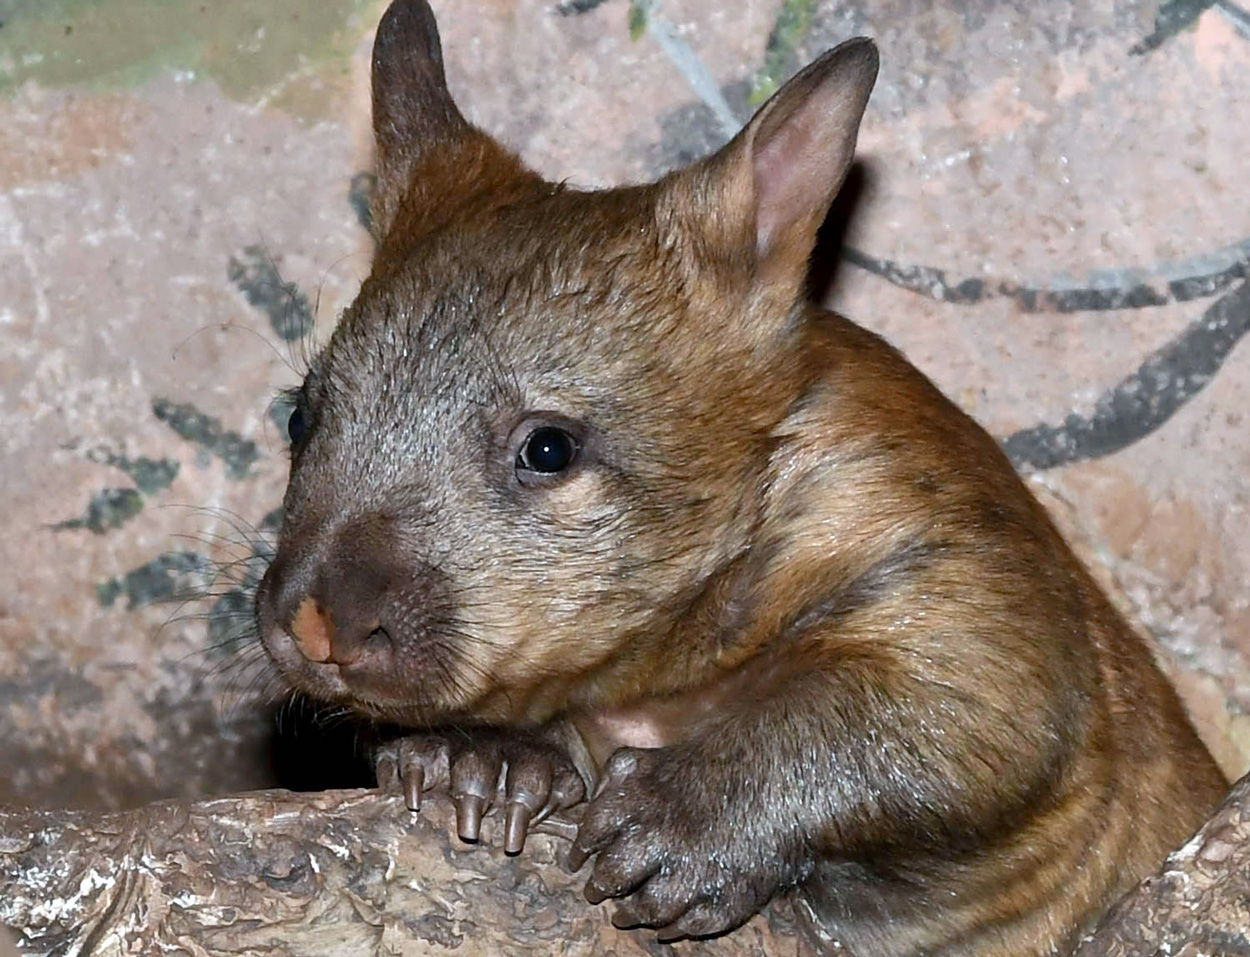 There are only nine southern hairy-nosed wombats in five North American institutions, including at Brookfield Zoo. Now, guests can venture over to the zoo's Australia House to see the latest addition. A wombat joey (a marsupial baby), born on February 4, 2017, is out and about exploring her surroundings along with her mom, 17-year-old Kambora.